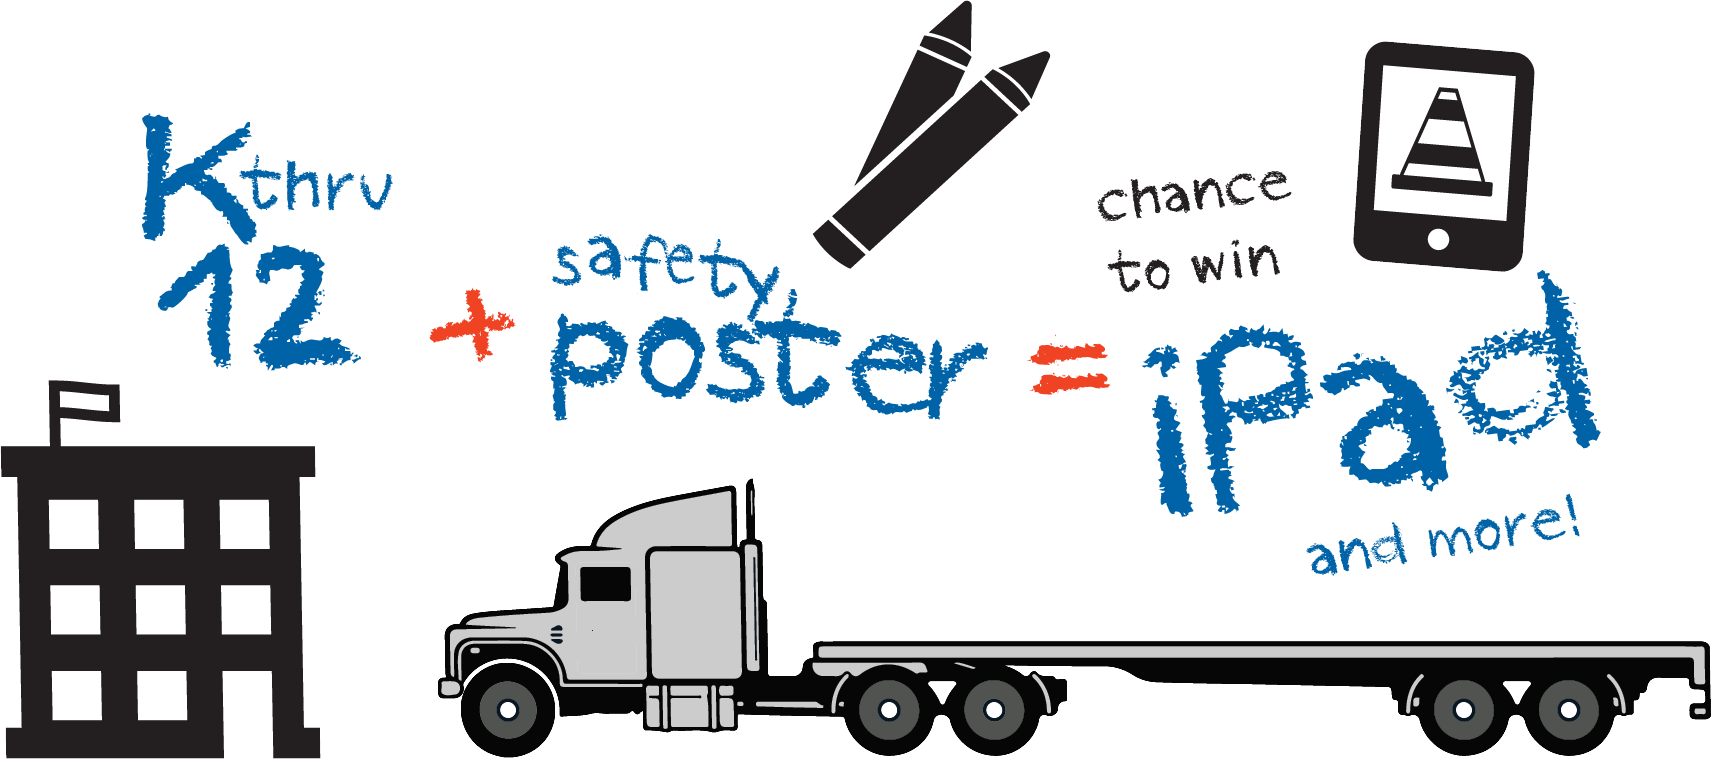 K thru 12 + safety poster = chance to win iPad and more!